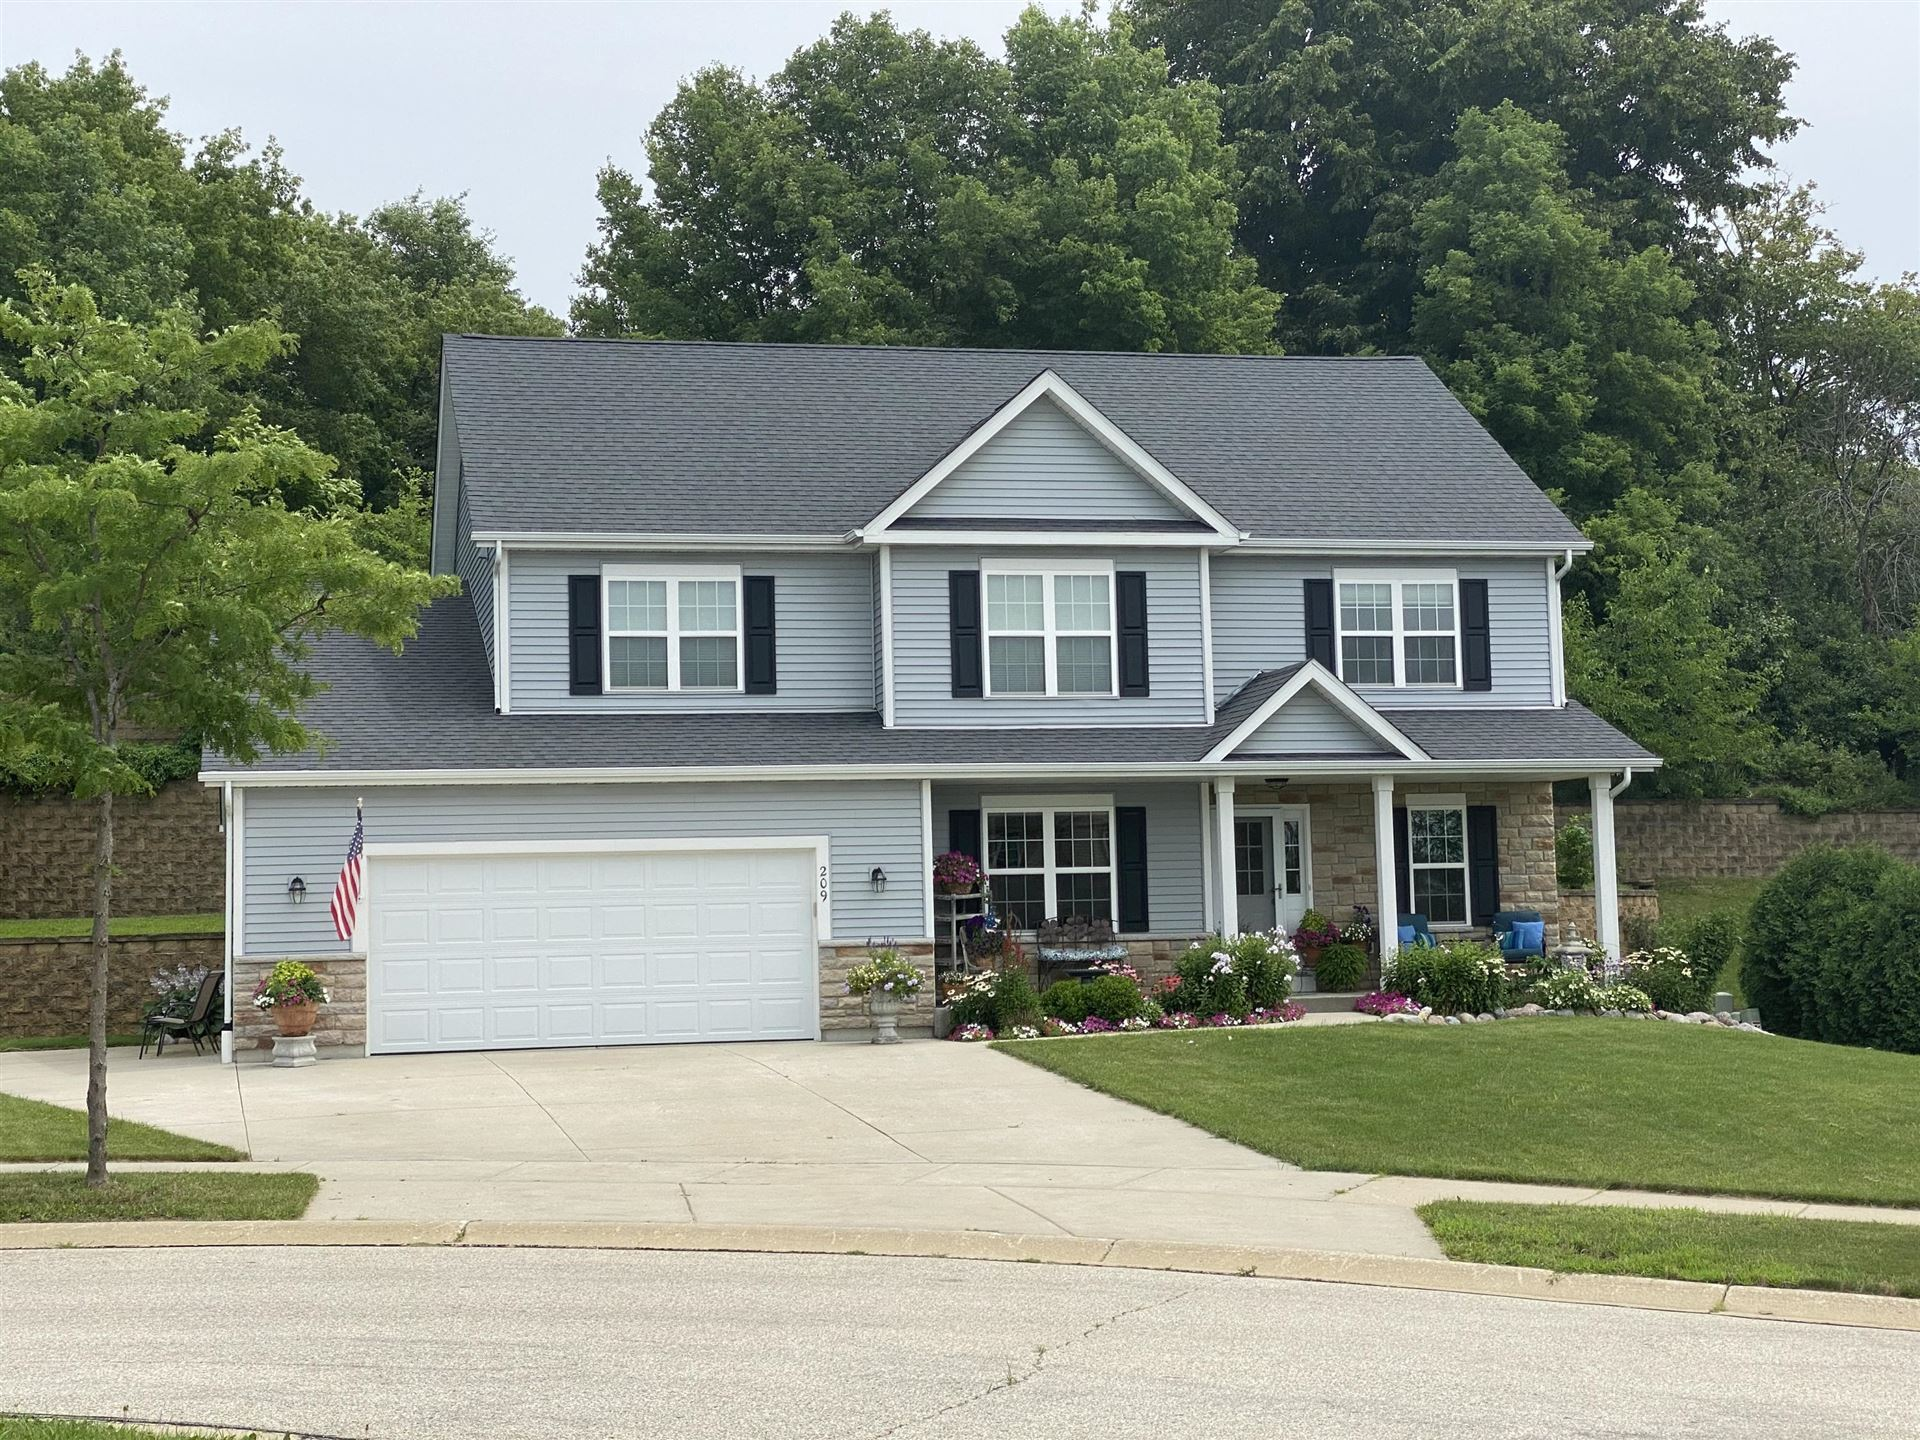 209 Tansdale Ct, Johnson Creek, WI 53038 - #: 1701683